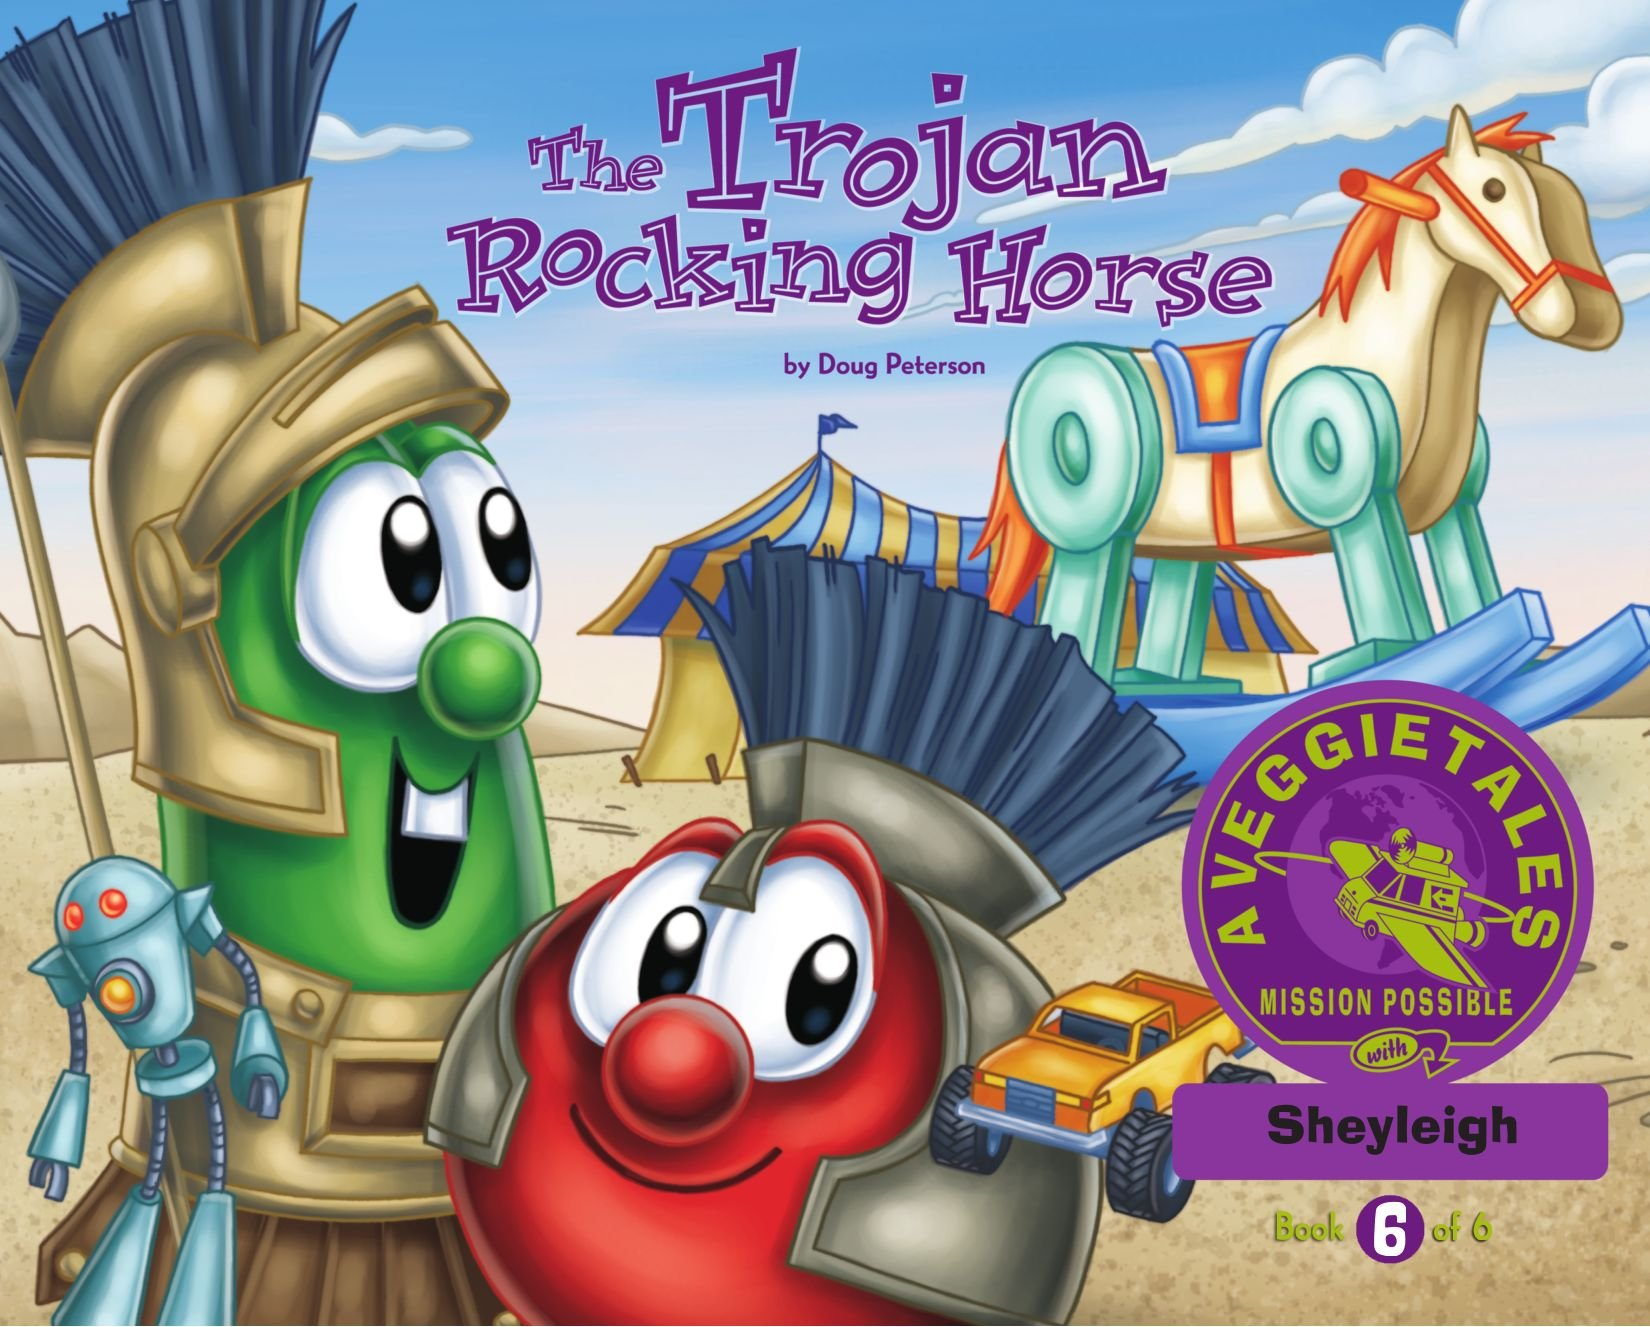 The Trojan Rocking Horse - VeggieTales Mission Possible Adventure Series #6: Personalized for Sheyleigh (Girl) PDF